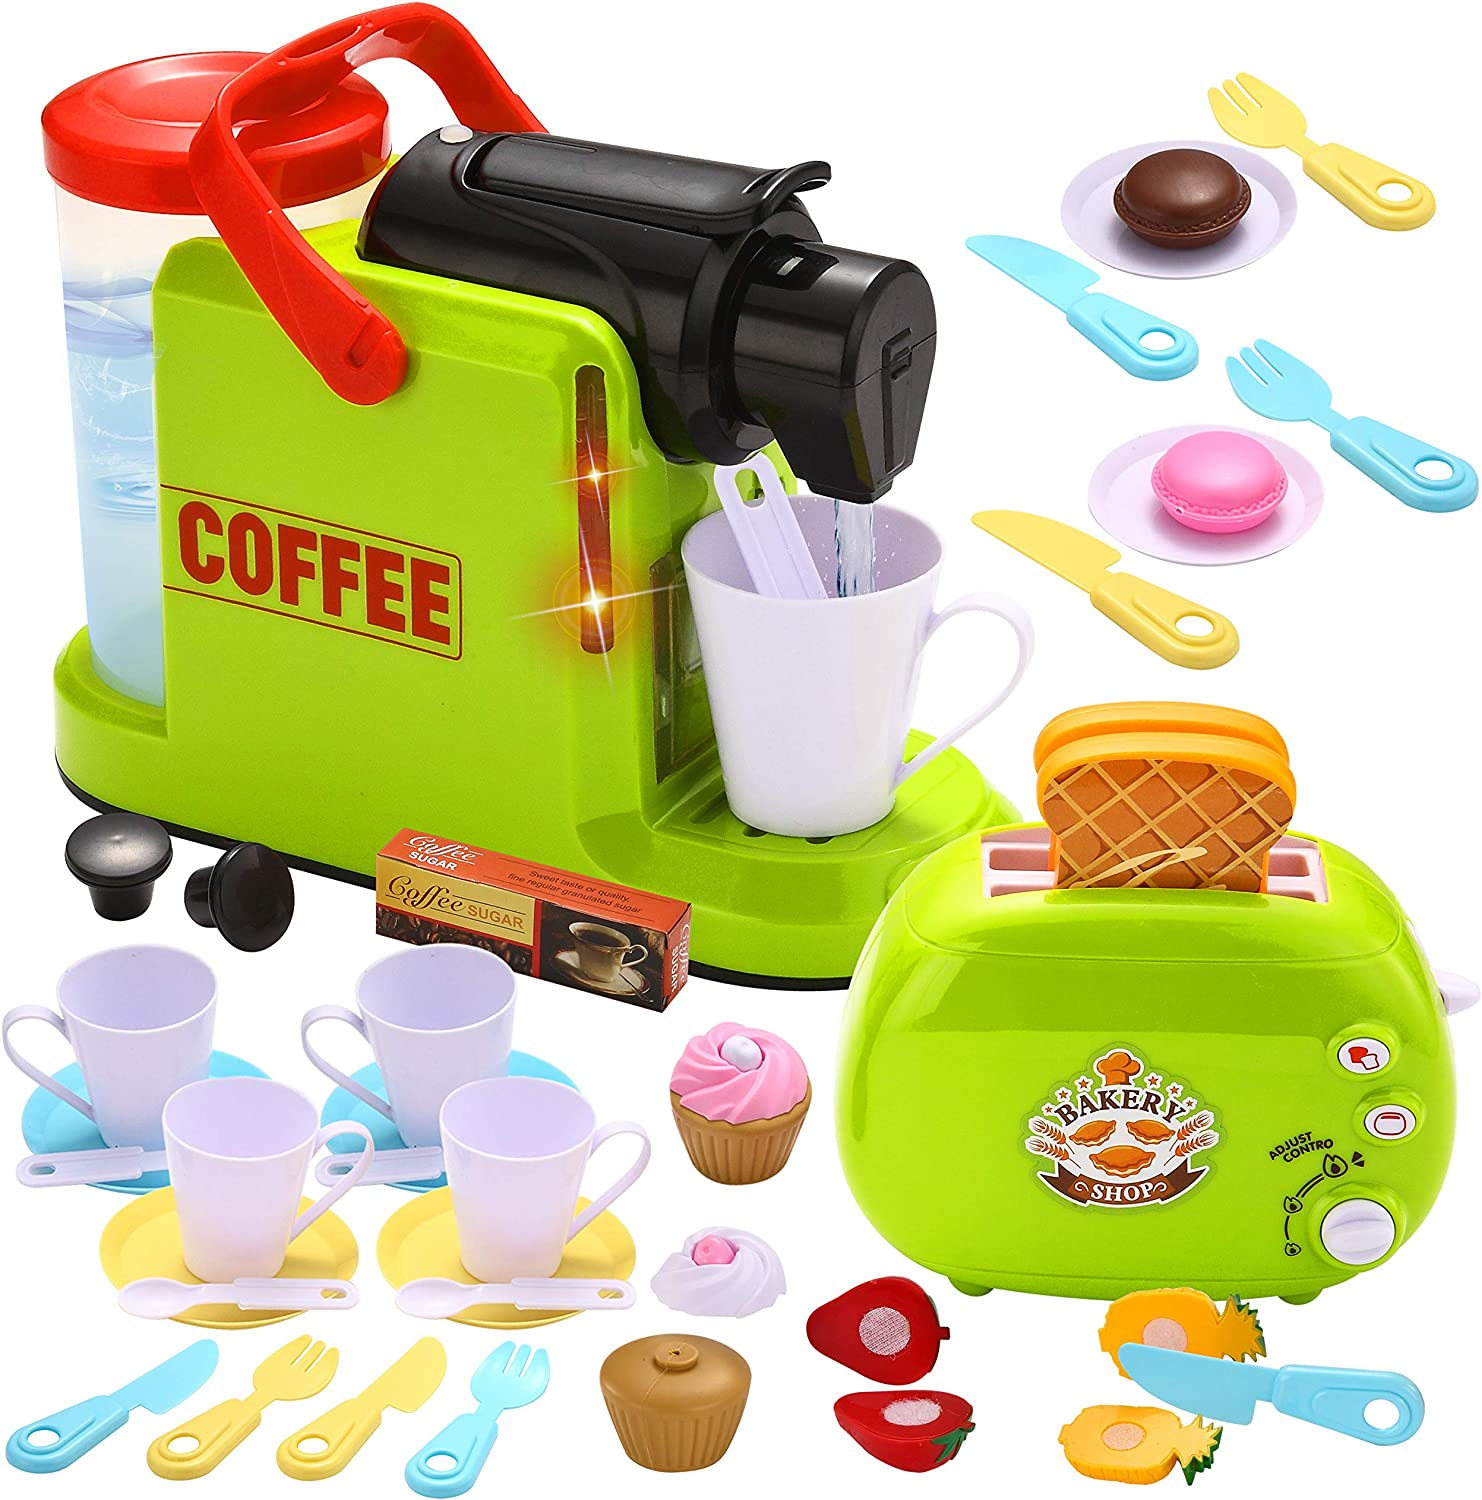 JOYIN 36 Pieces Kids Play Kitchen Accessories with Toy Coffee Maker and Toaster Machine Kitchen Pretend Food Play Set Toys for Toddlers